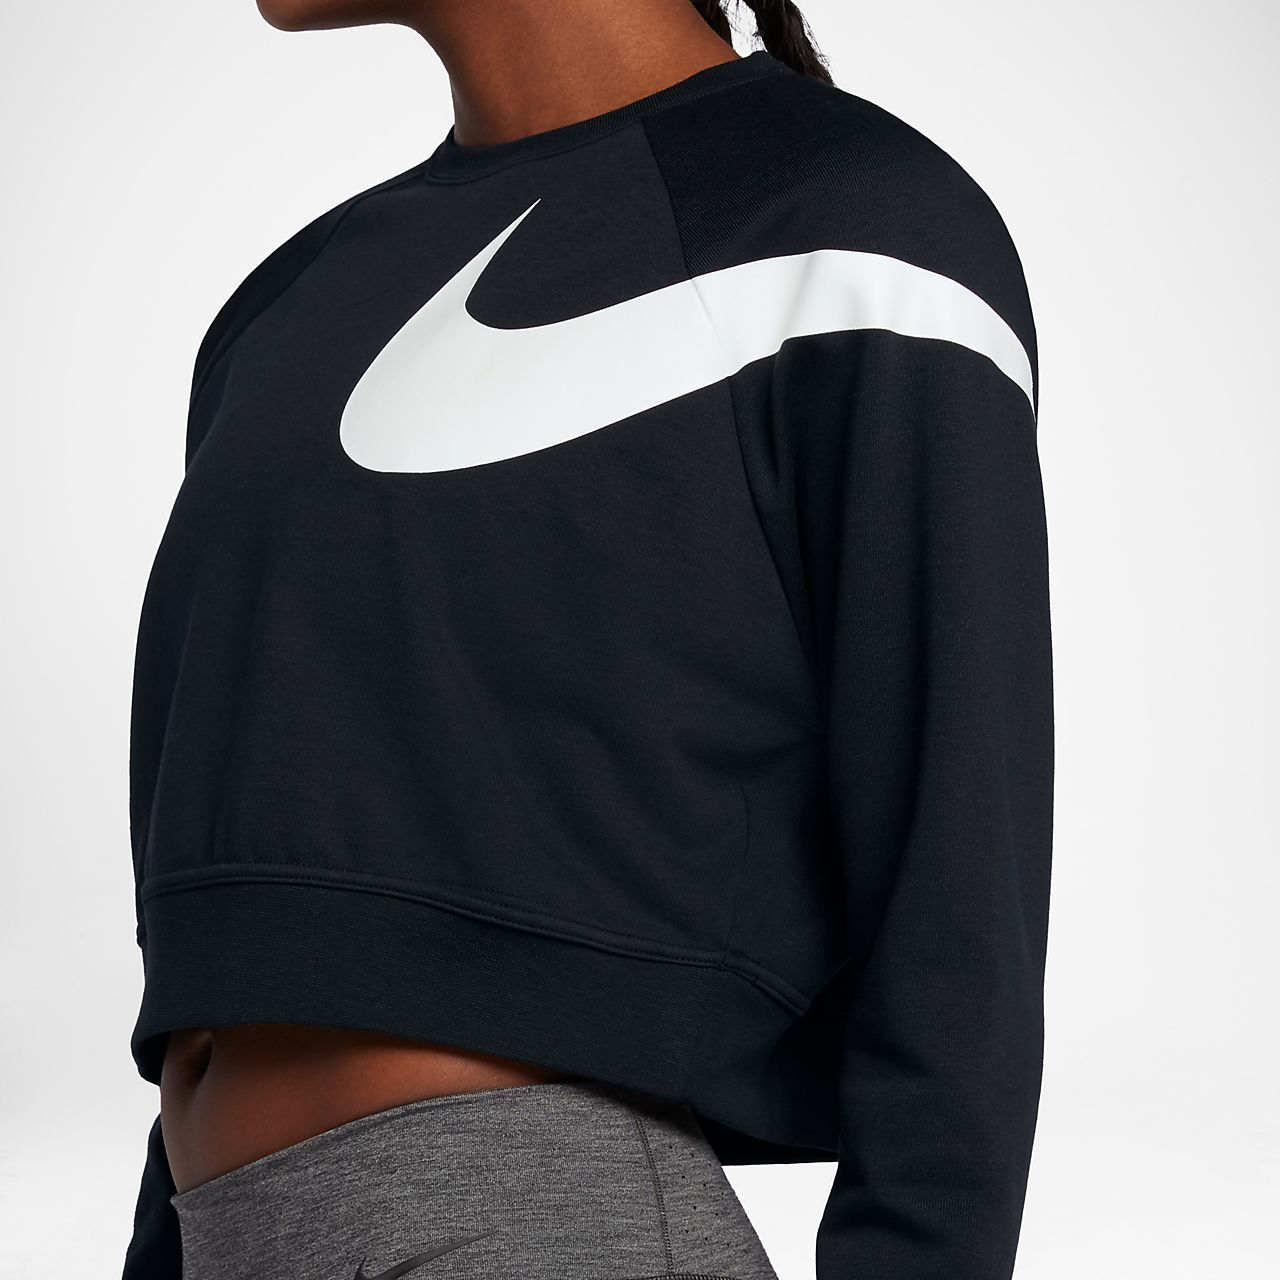 innovative design 0574f a75fa Nike Dry Versa Women s Long Sleeve Training Top